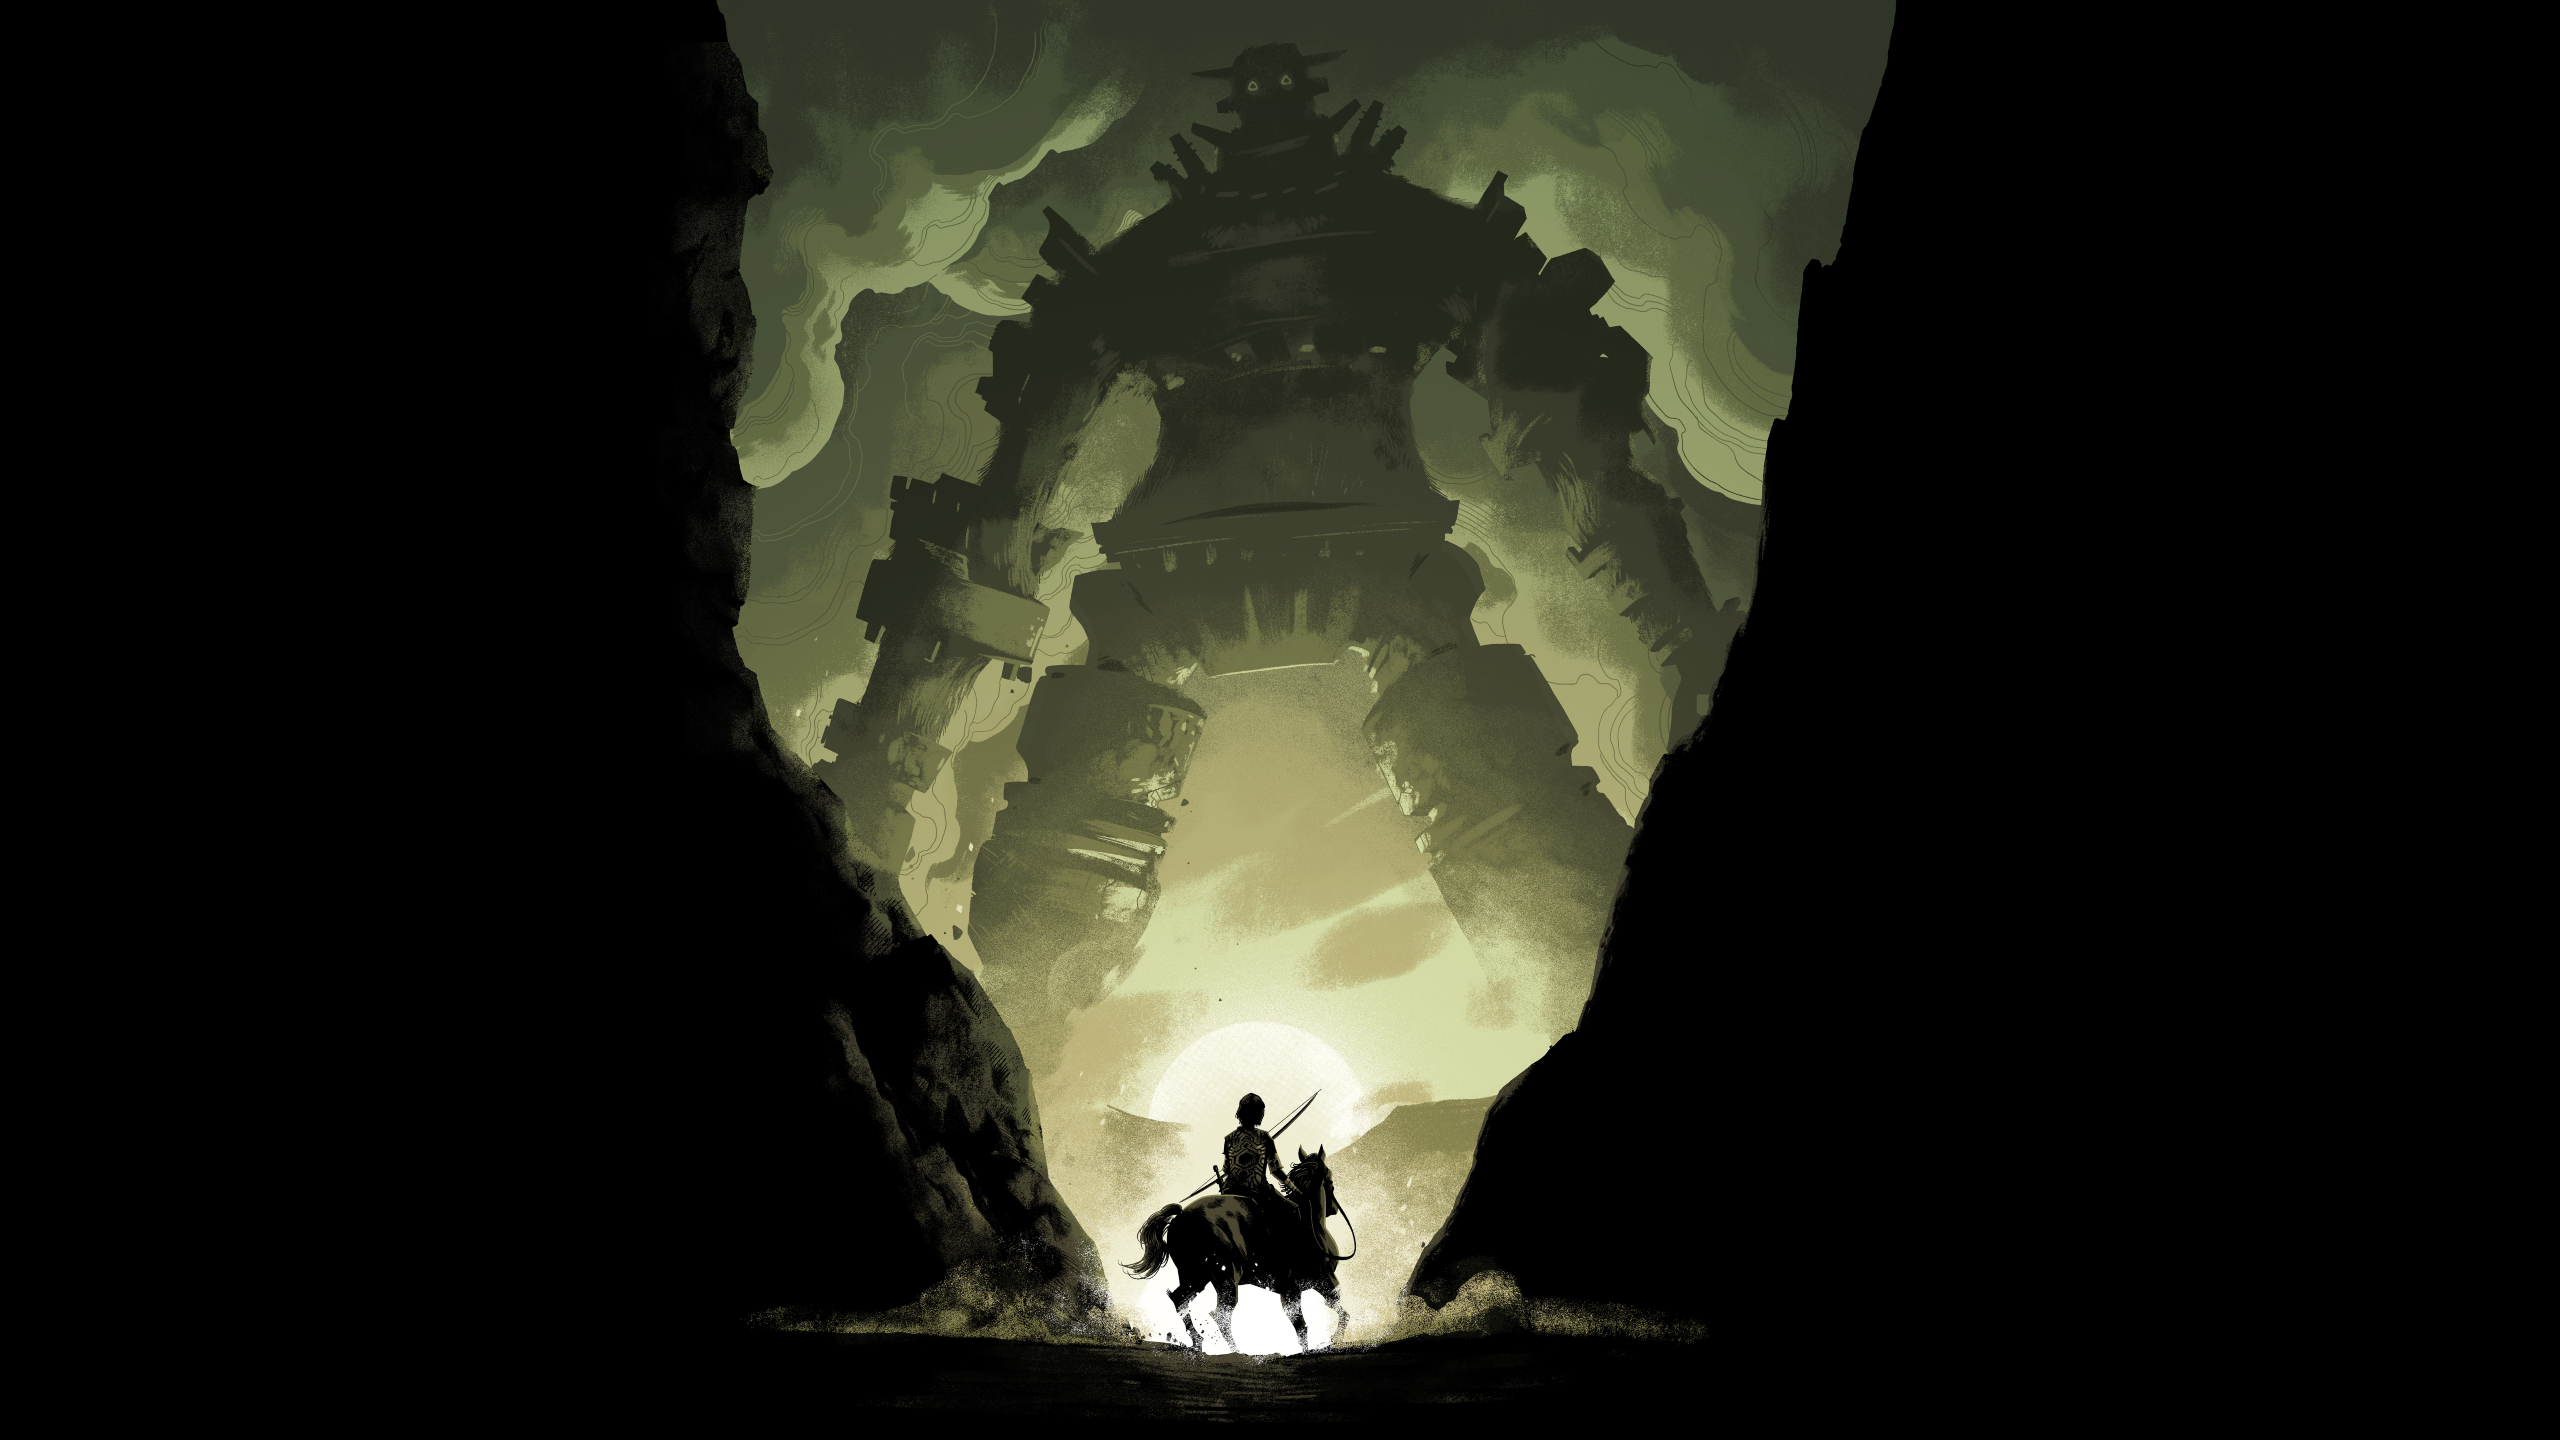 2560x1440 Shadow Of The Colossus Video Game 1440p Resolution